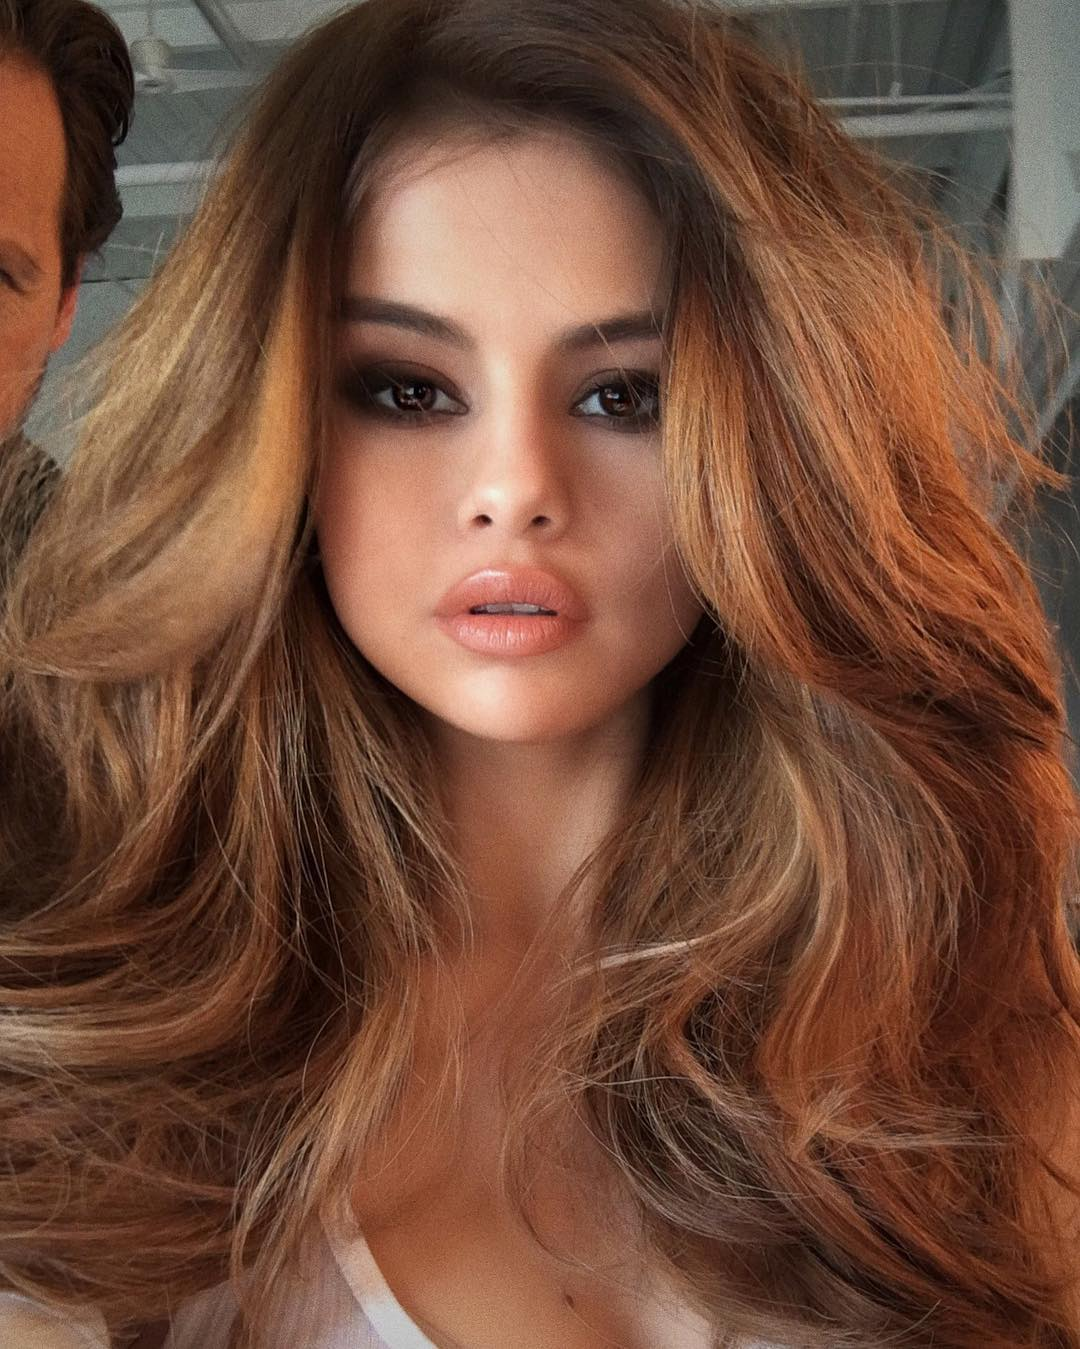 Hungvanngo On Instagram Tb This Hair